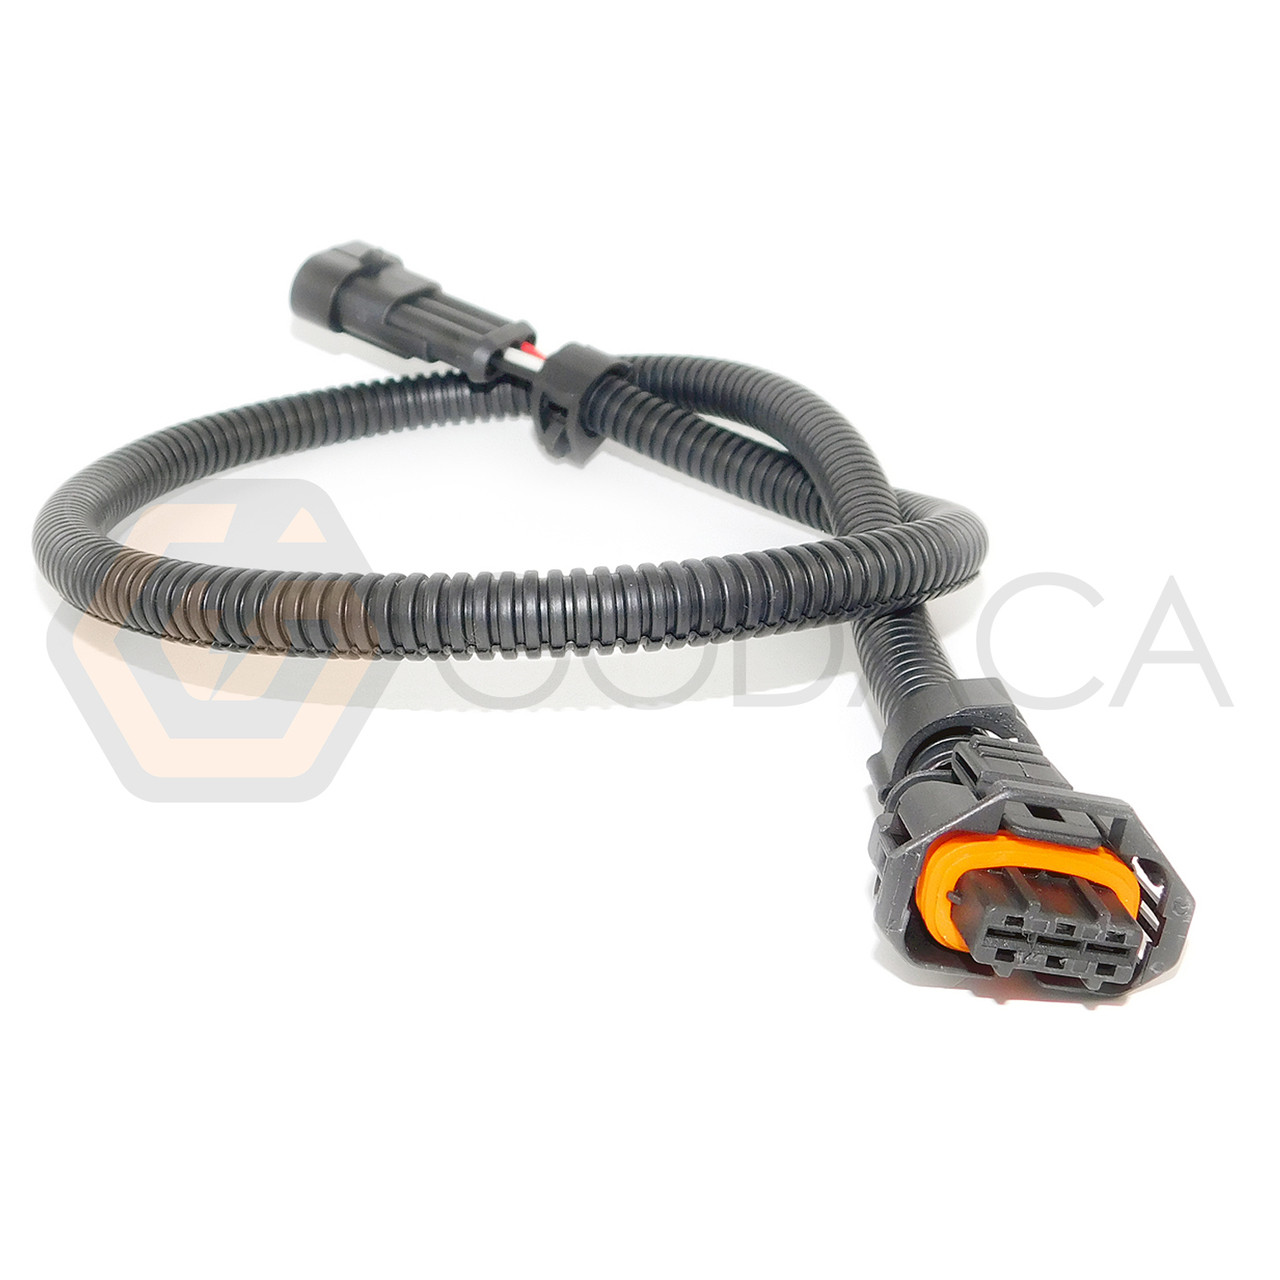 small resolution of 1x wiring harness adapter for ls3 map sensor to ls2 ls1 map 24 godaca llc